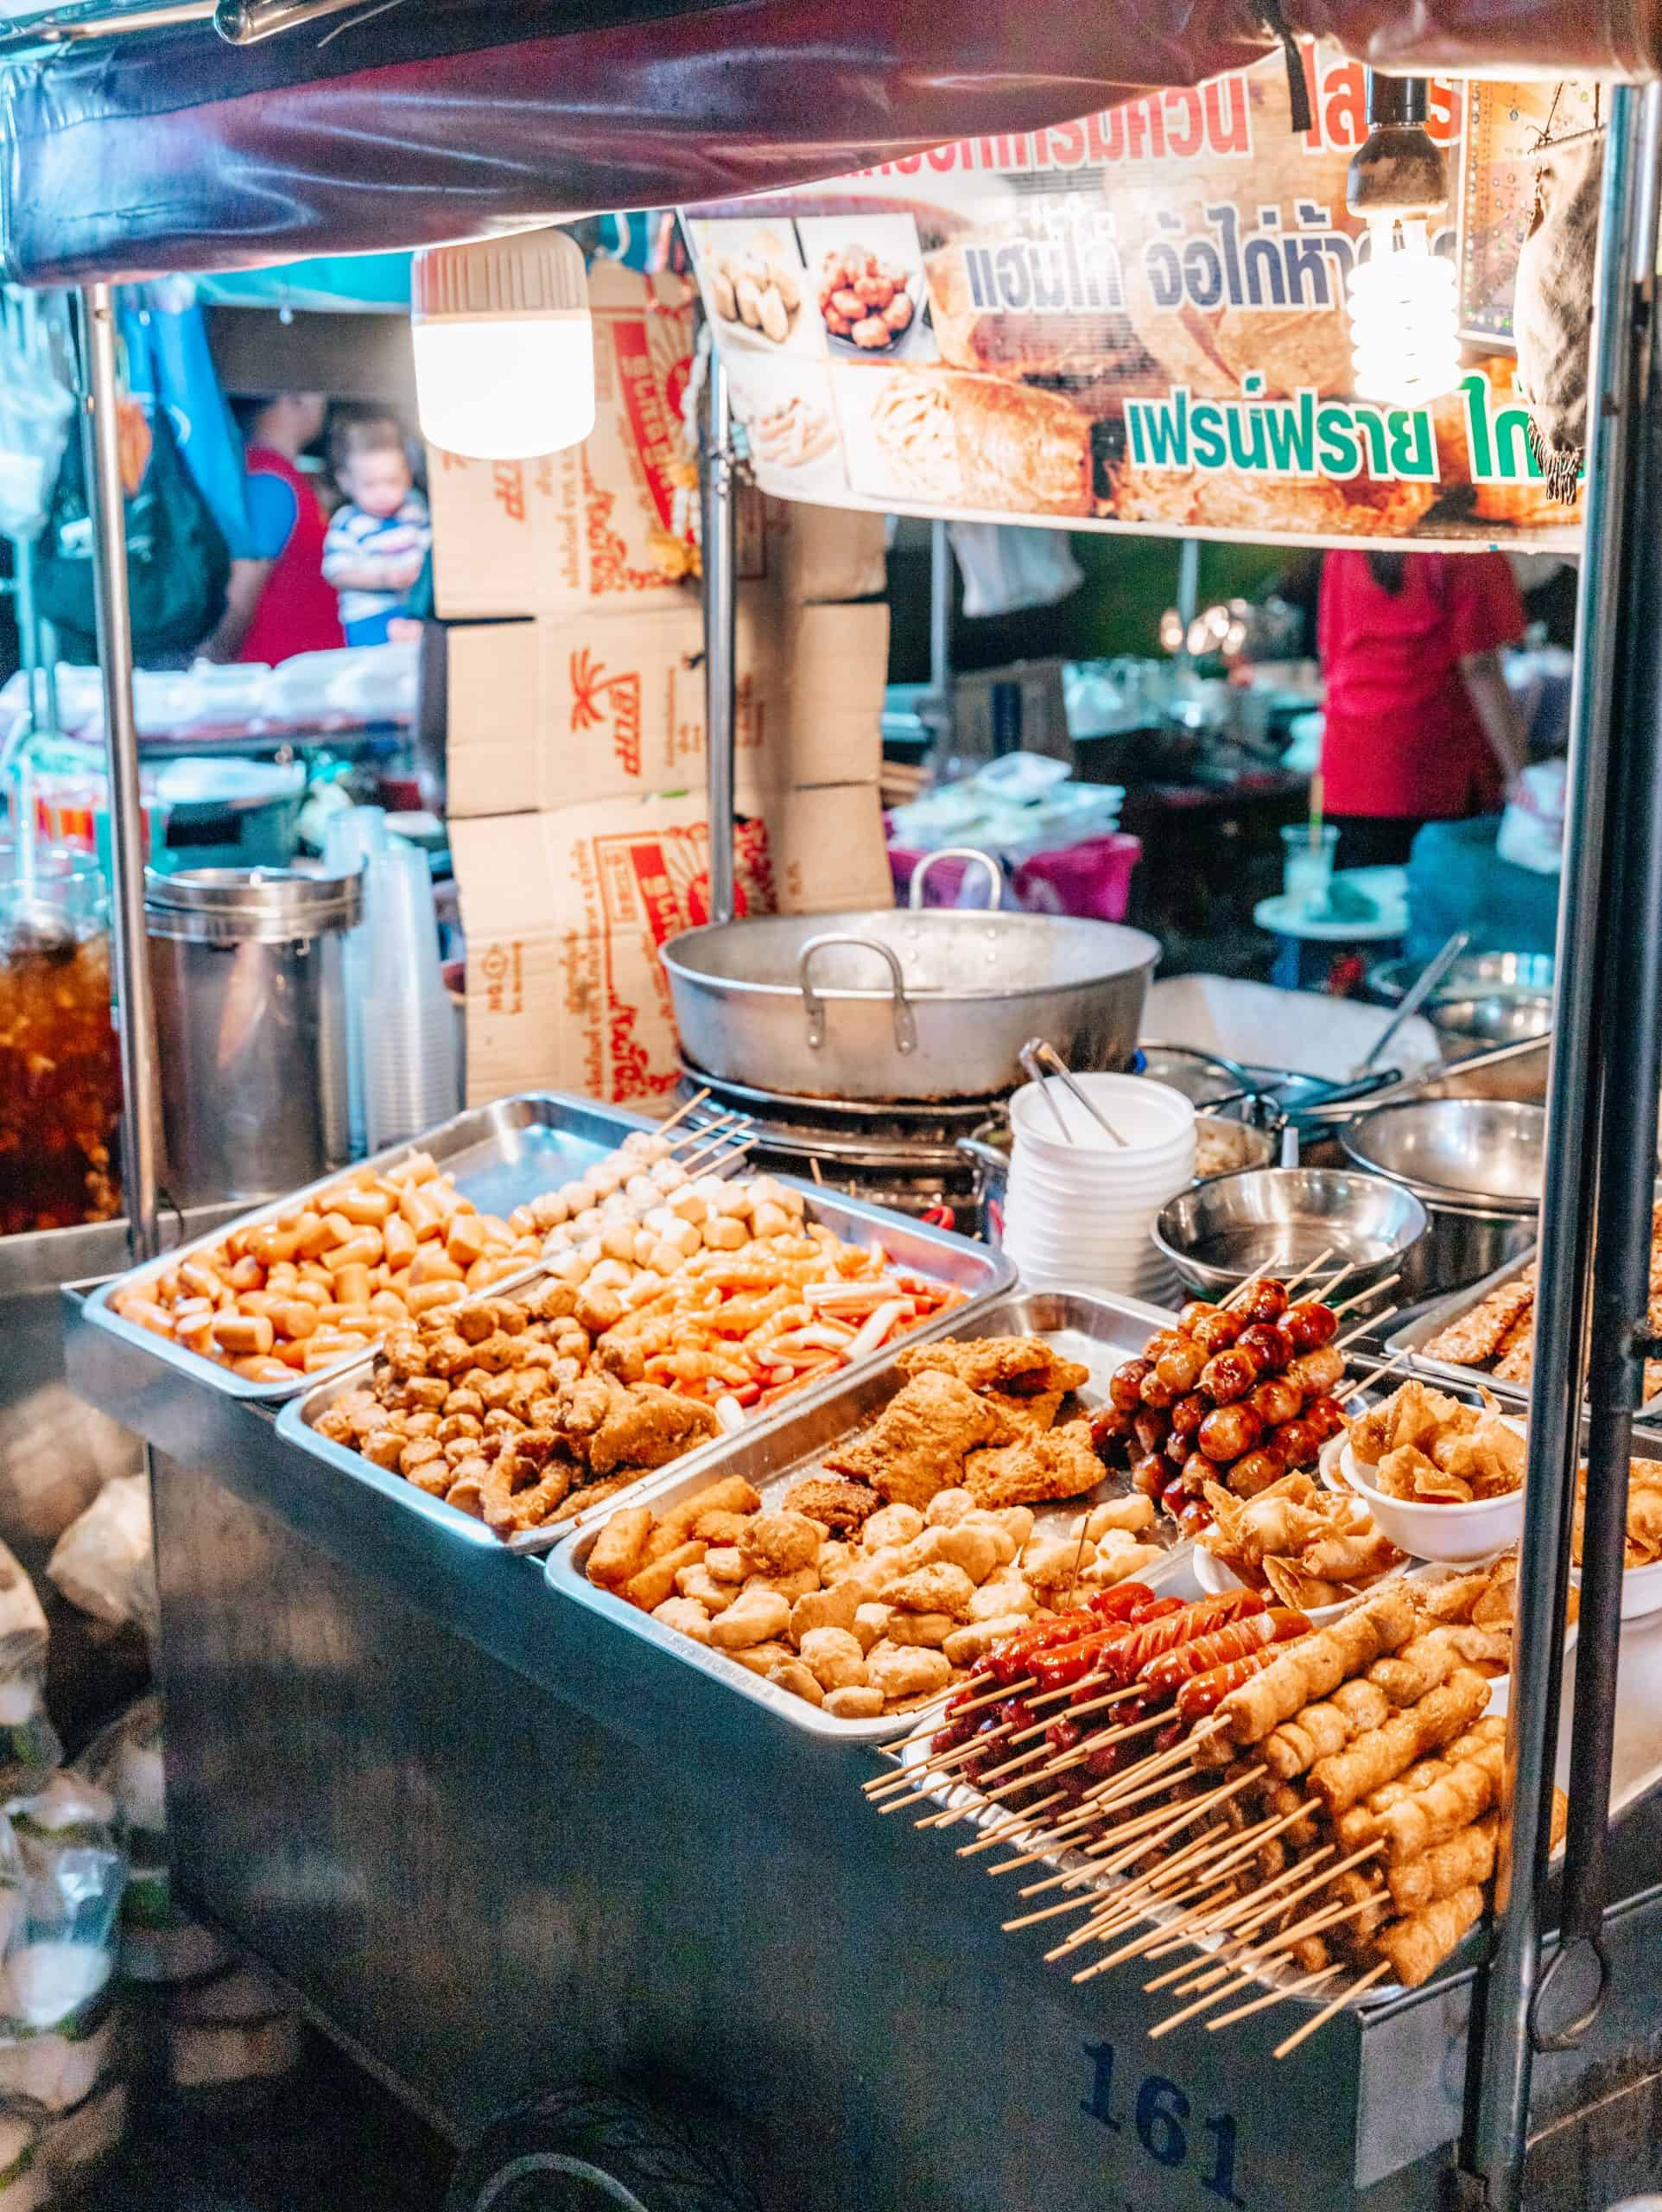 Streetfood in Bangkok - The Next Trip